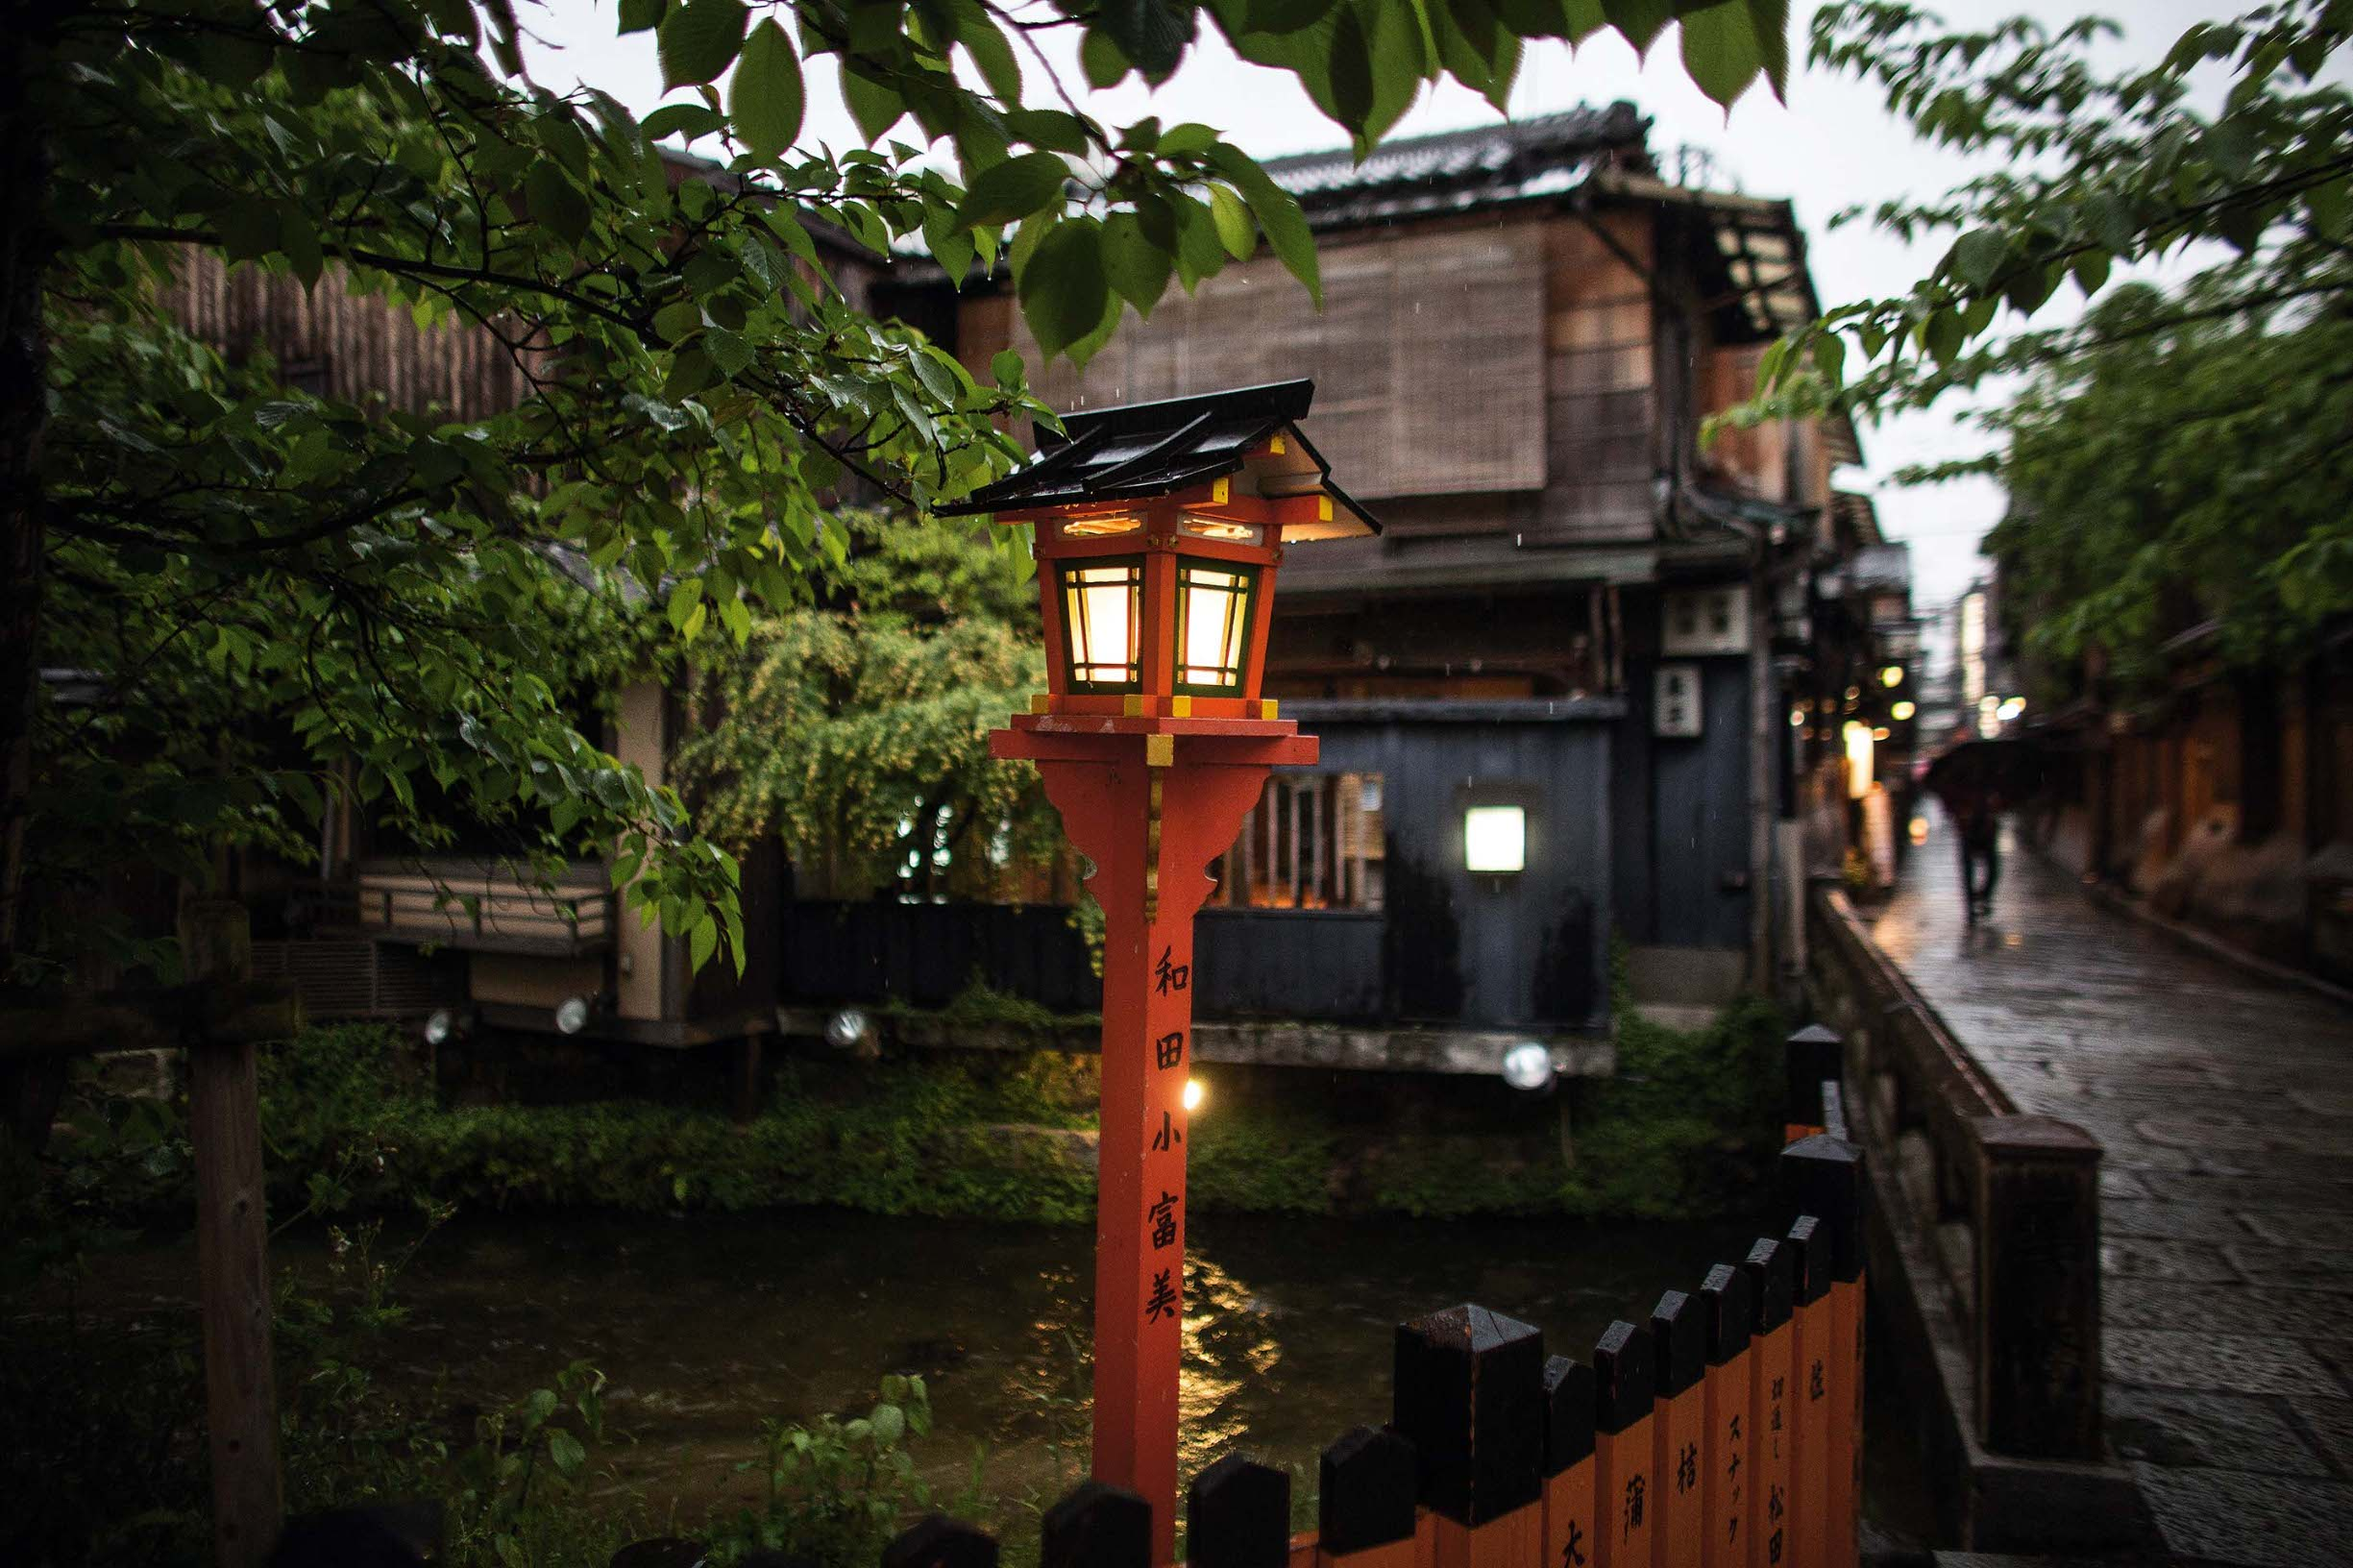 KYOTO, JAPAN - APRIL 27:  A traditional lamp is illuminated on April 27, 2016 in Kyoto, Japan. Now the seventh largest city in Japan, Kyoto was once the Imperial capital for more than one thousand years, it is now the capital city of Kyoto Prefecture and a major part of the Kyoto-Osaka-Kobe metropolitan area.  (Photo by Carl Court/Getty Images)